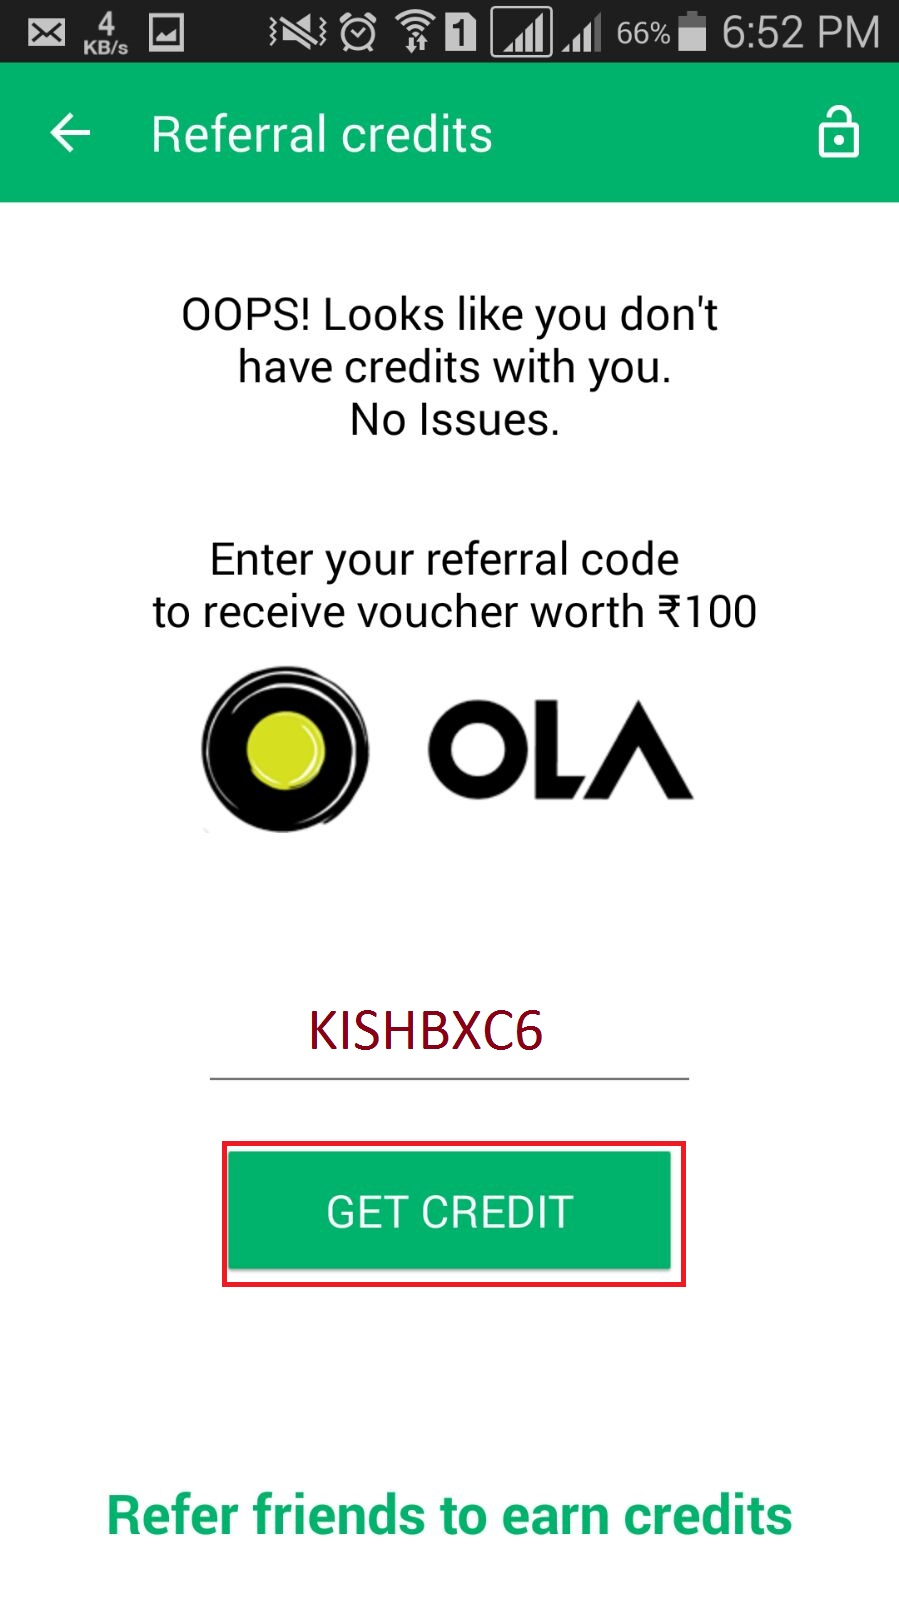 earn money app referral code money view app offer refer and earn free rs 1000 ola 1132